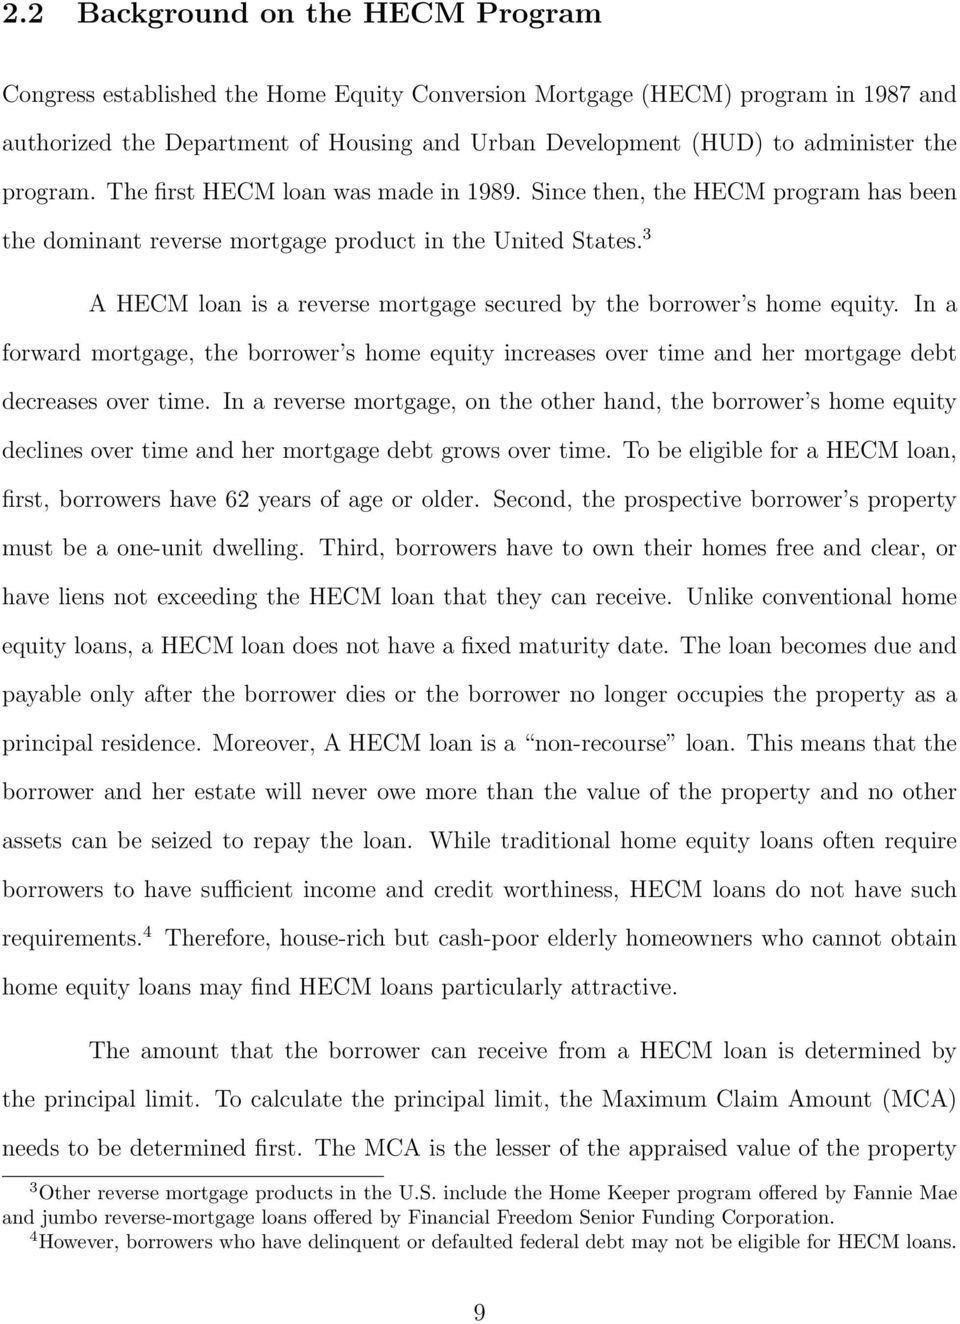 3 A HECM loan is a reverse mortgage secured by the borrower s home equity. In a forward mortgage, the borrower s home equity increases over time and her mortgage debt decreases over time.